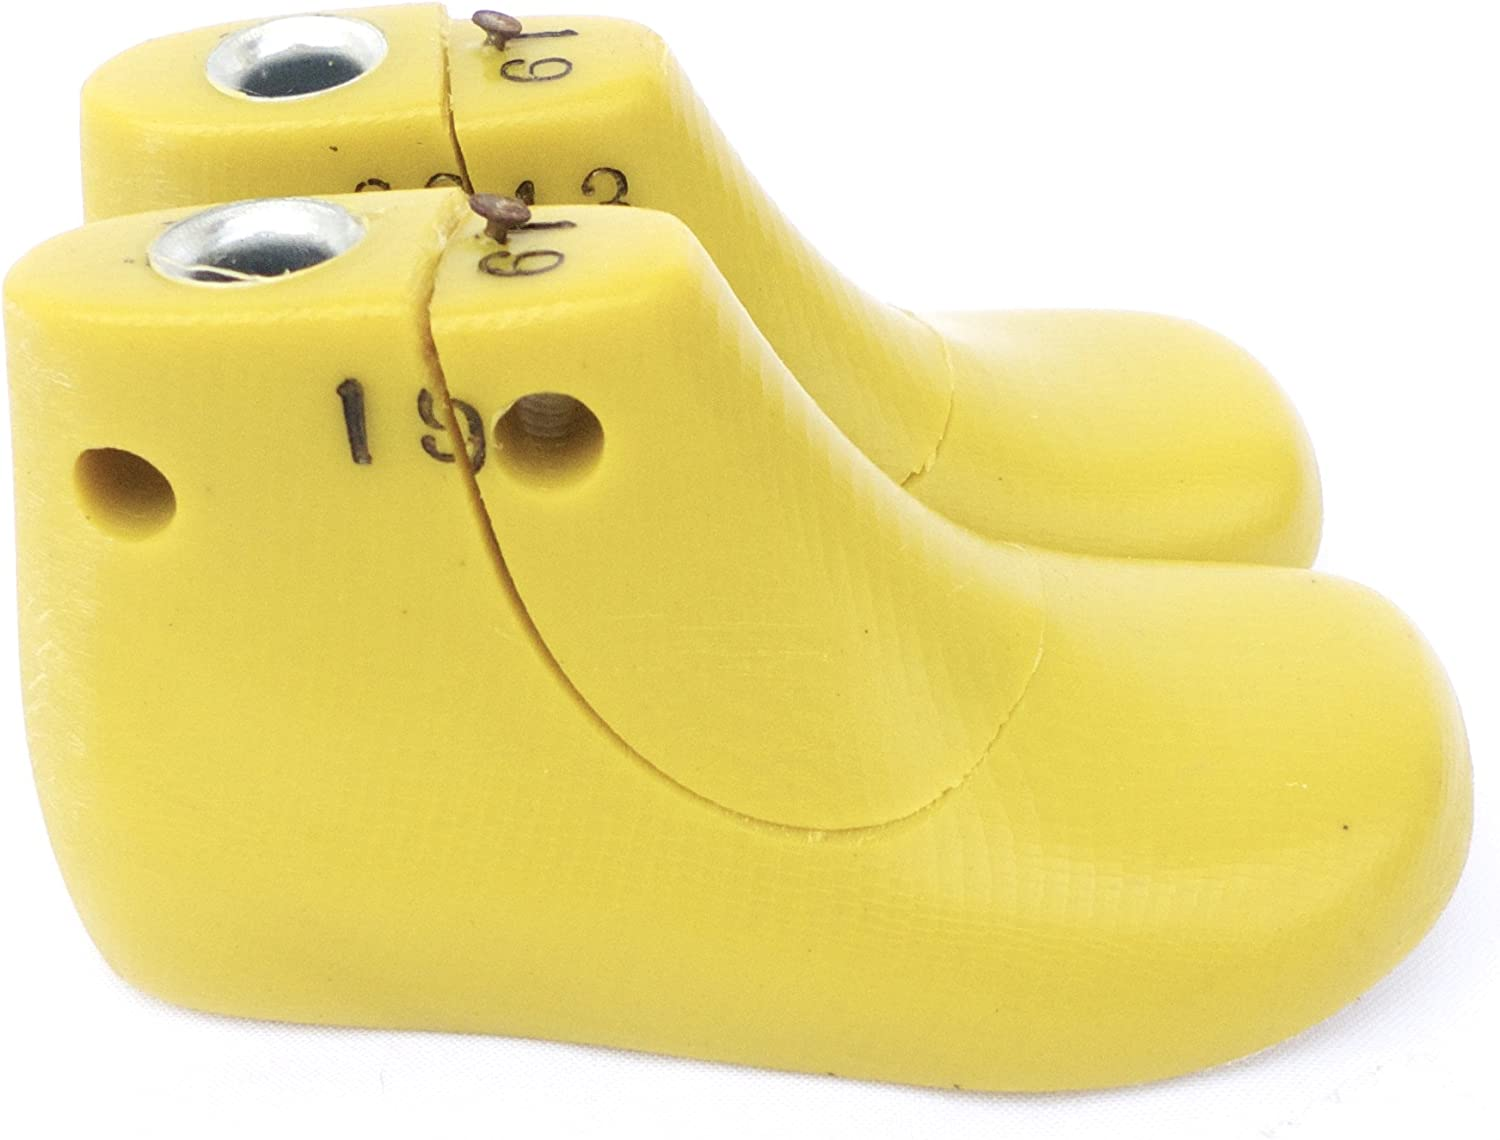 19 EU Plastic Shoe Lasts for Baby//Toddler Shoemaking